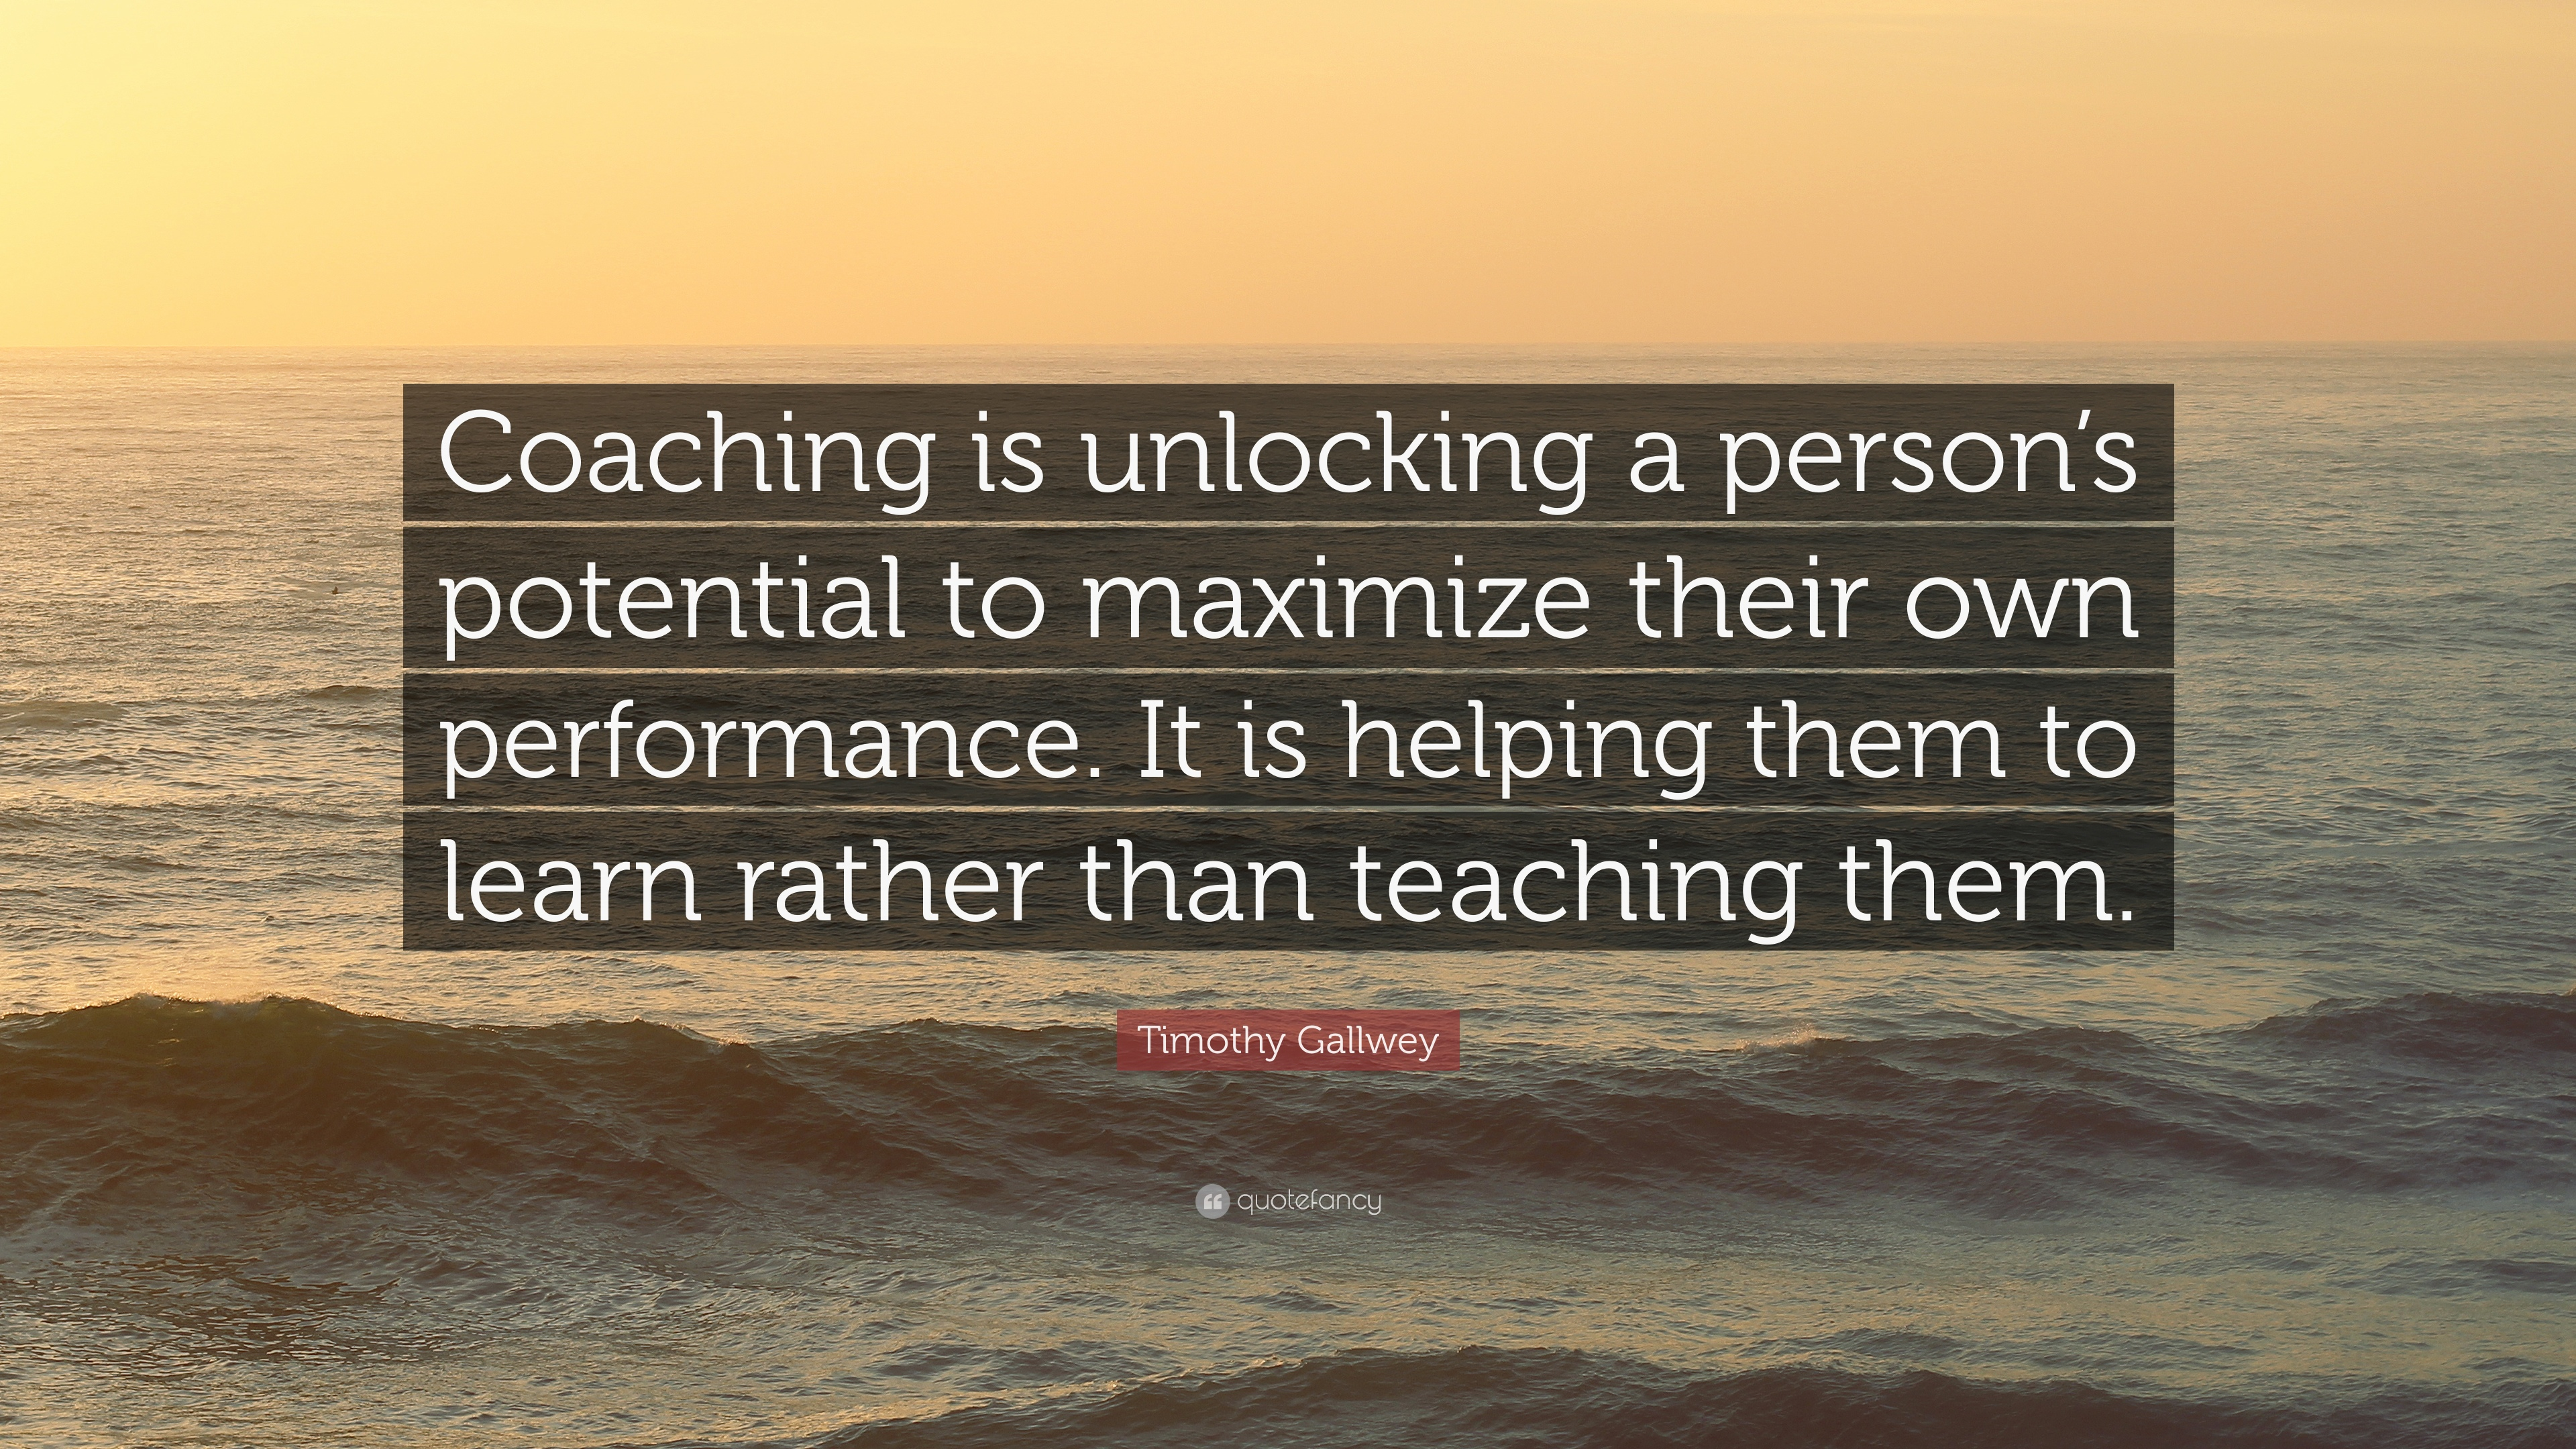 timothy gallwey quote coaching is unlocking a person s potential